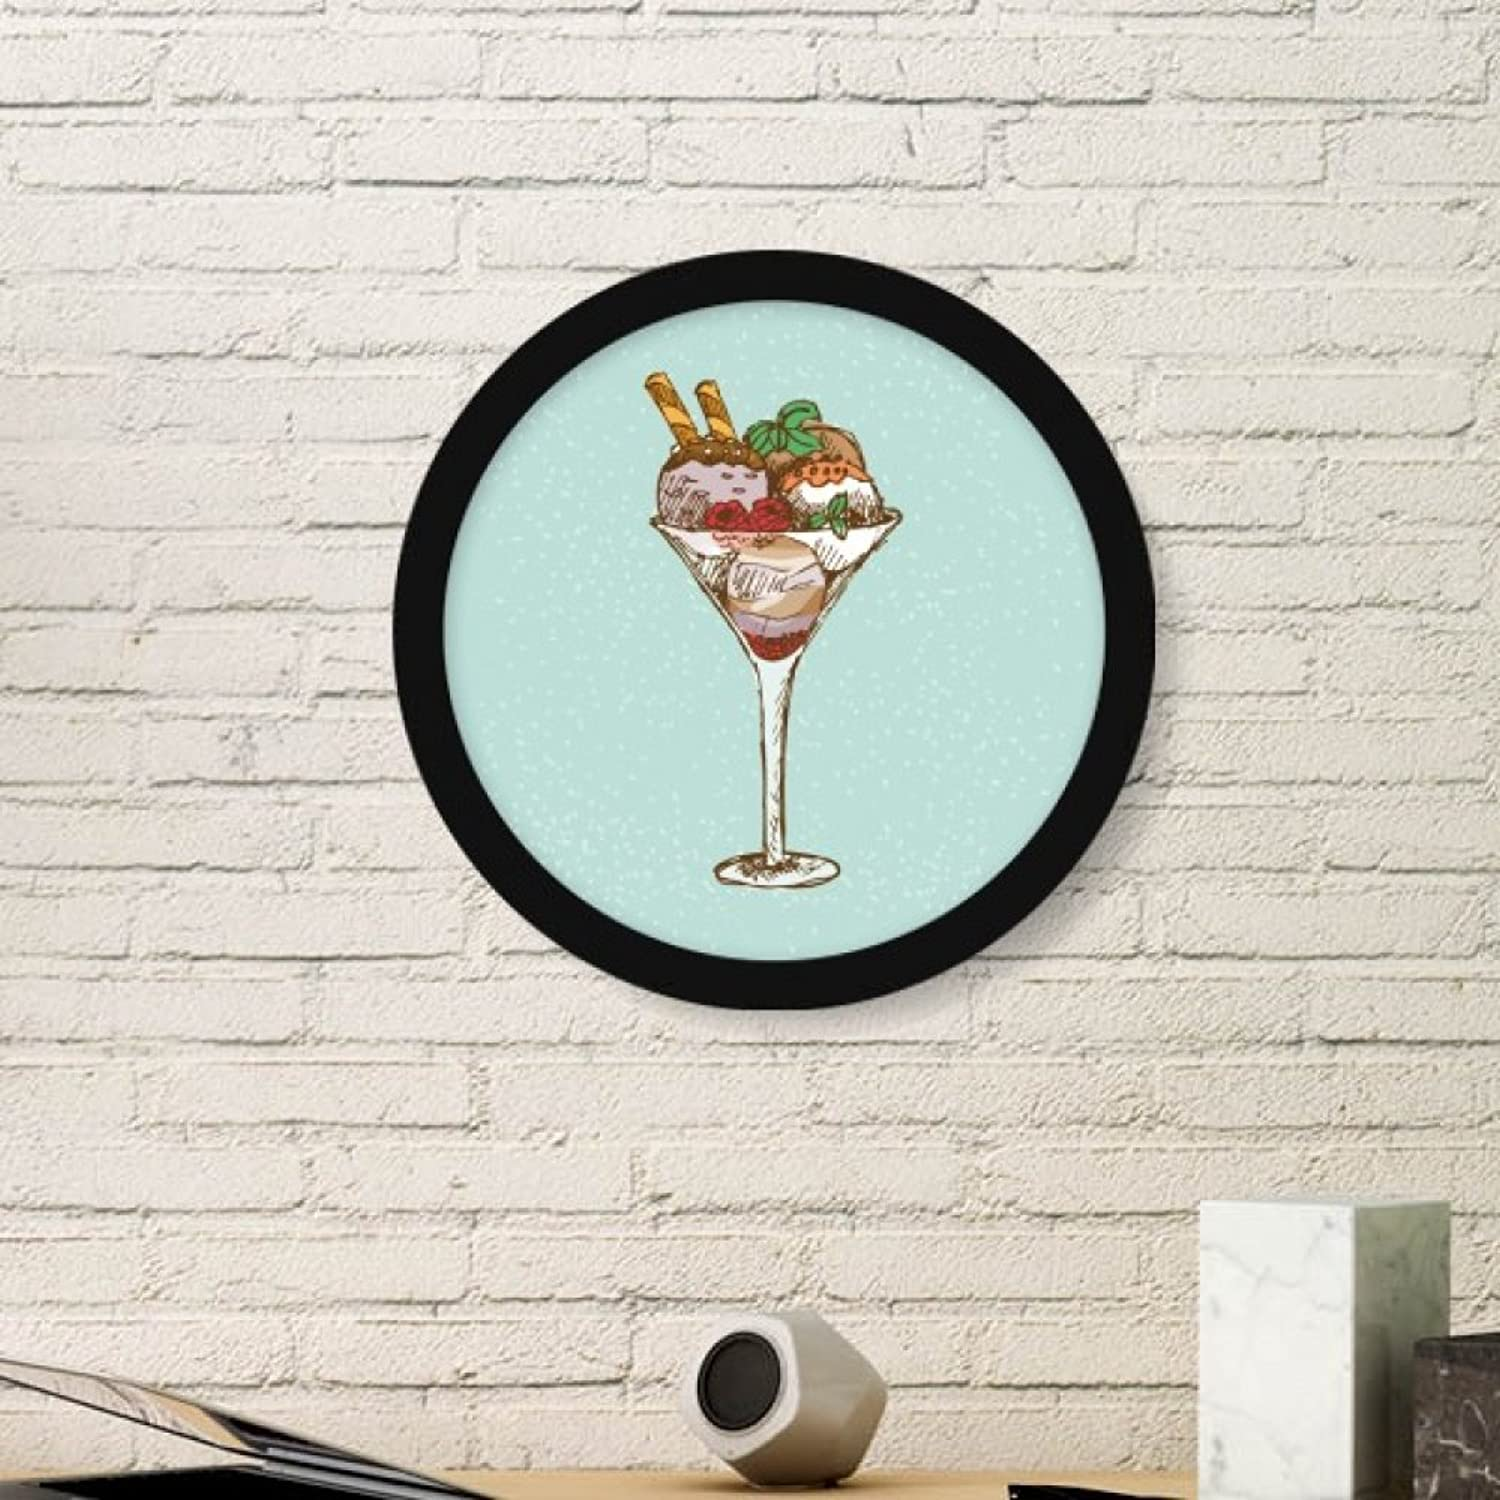 Leaves Flower Goblet Ice Cream Ball Art Painting Picture Photo Wooden Round Frame Home Wall Decor Gift